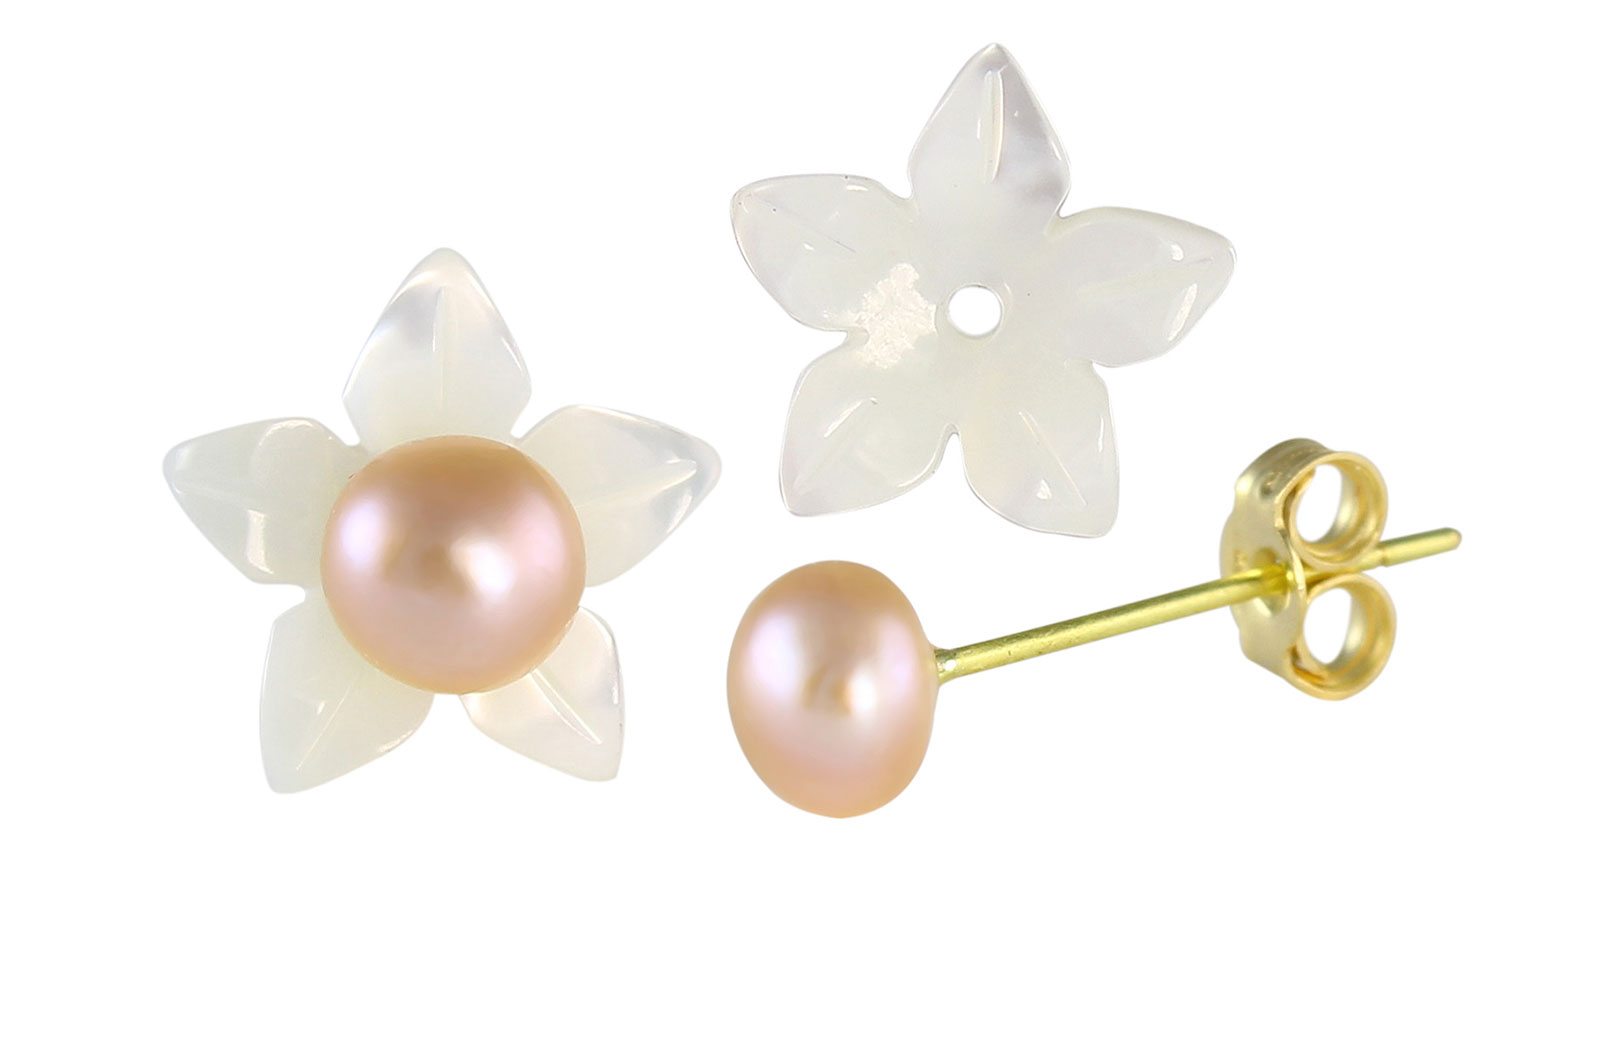 VP Jewels 18K  Yellow Gold,White Shell Flower  and 4-5MM Genuine Purple/Lavender  Pearls Earrings